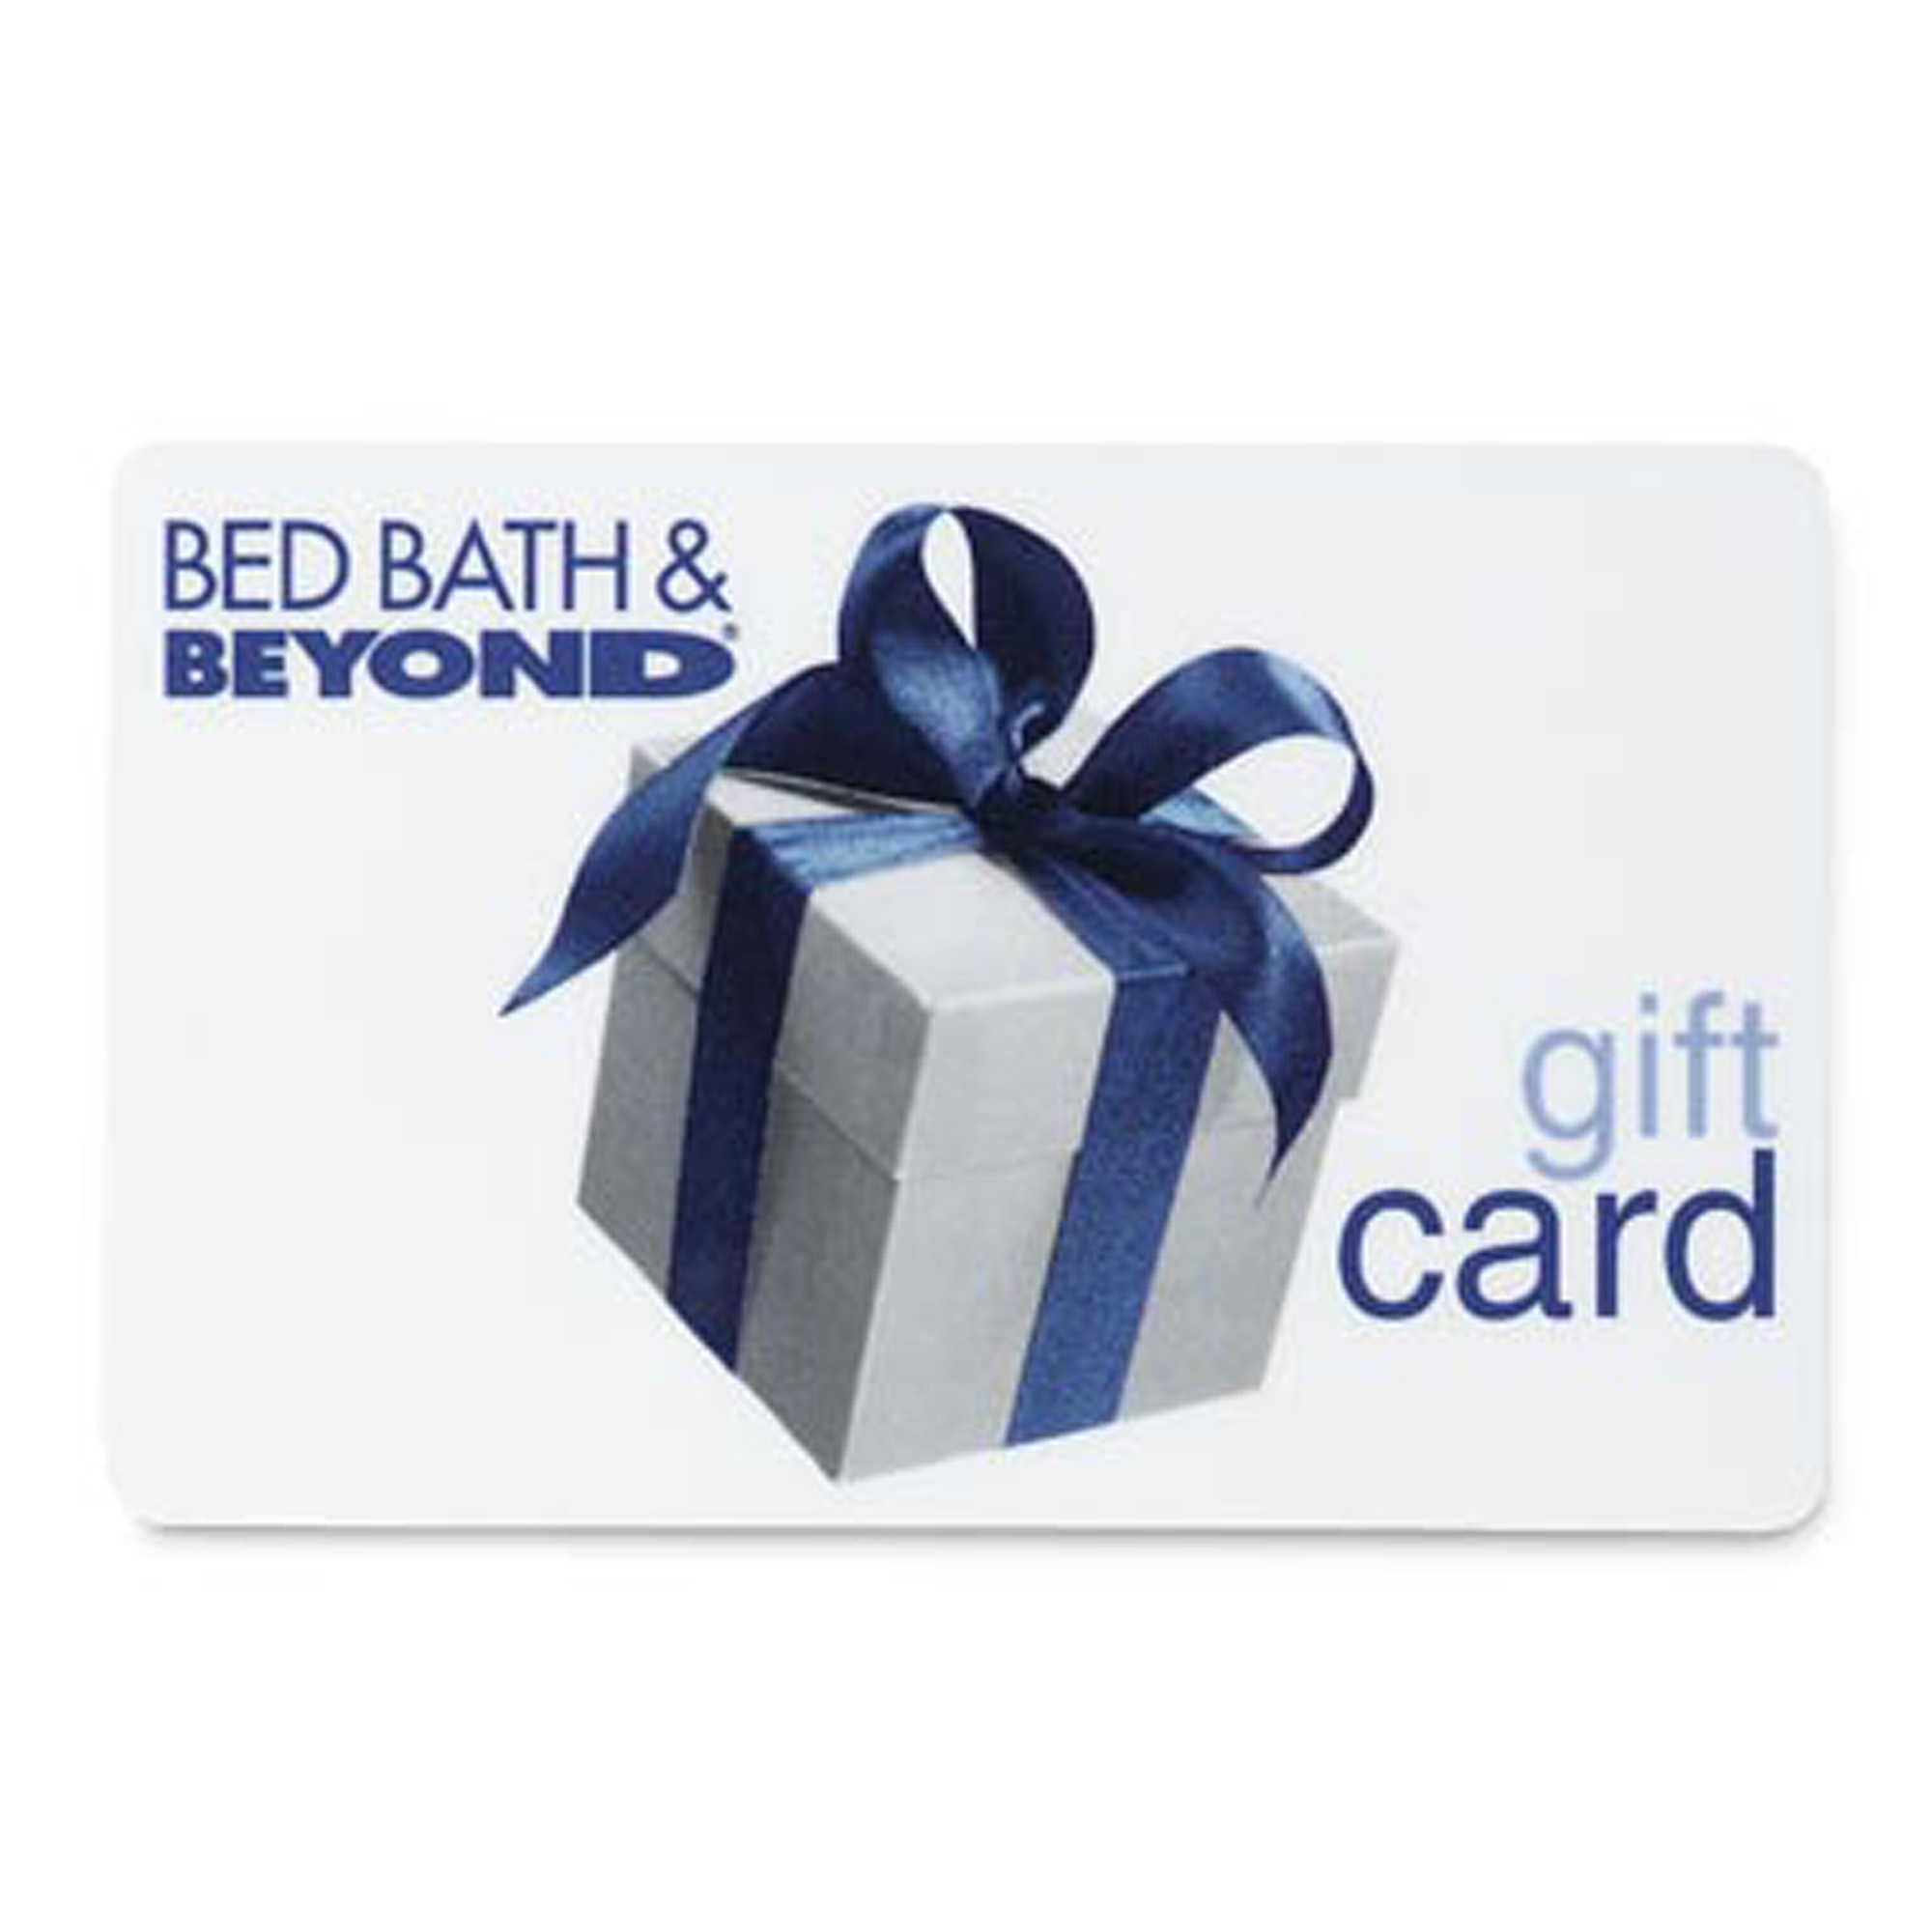 can i check my bed bath and beyond gift card balance online